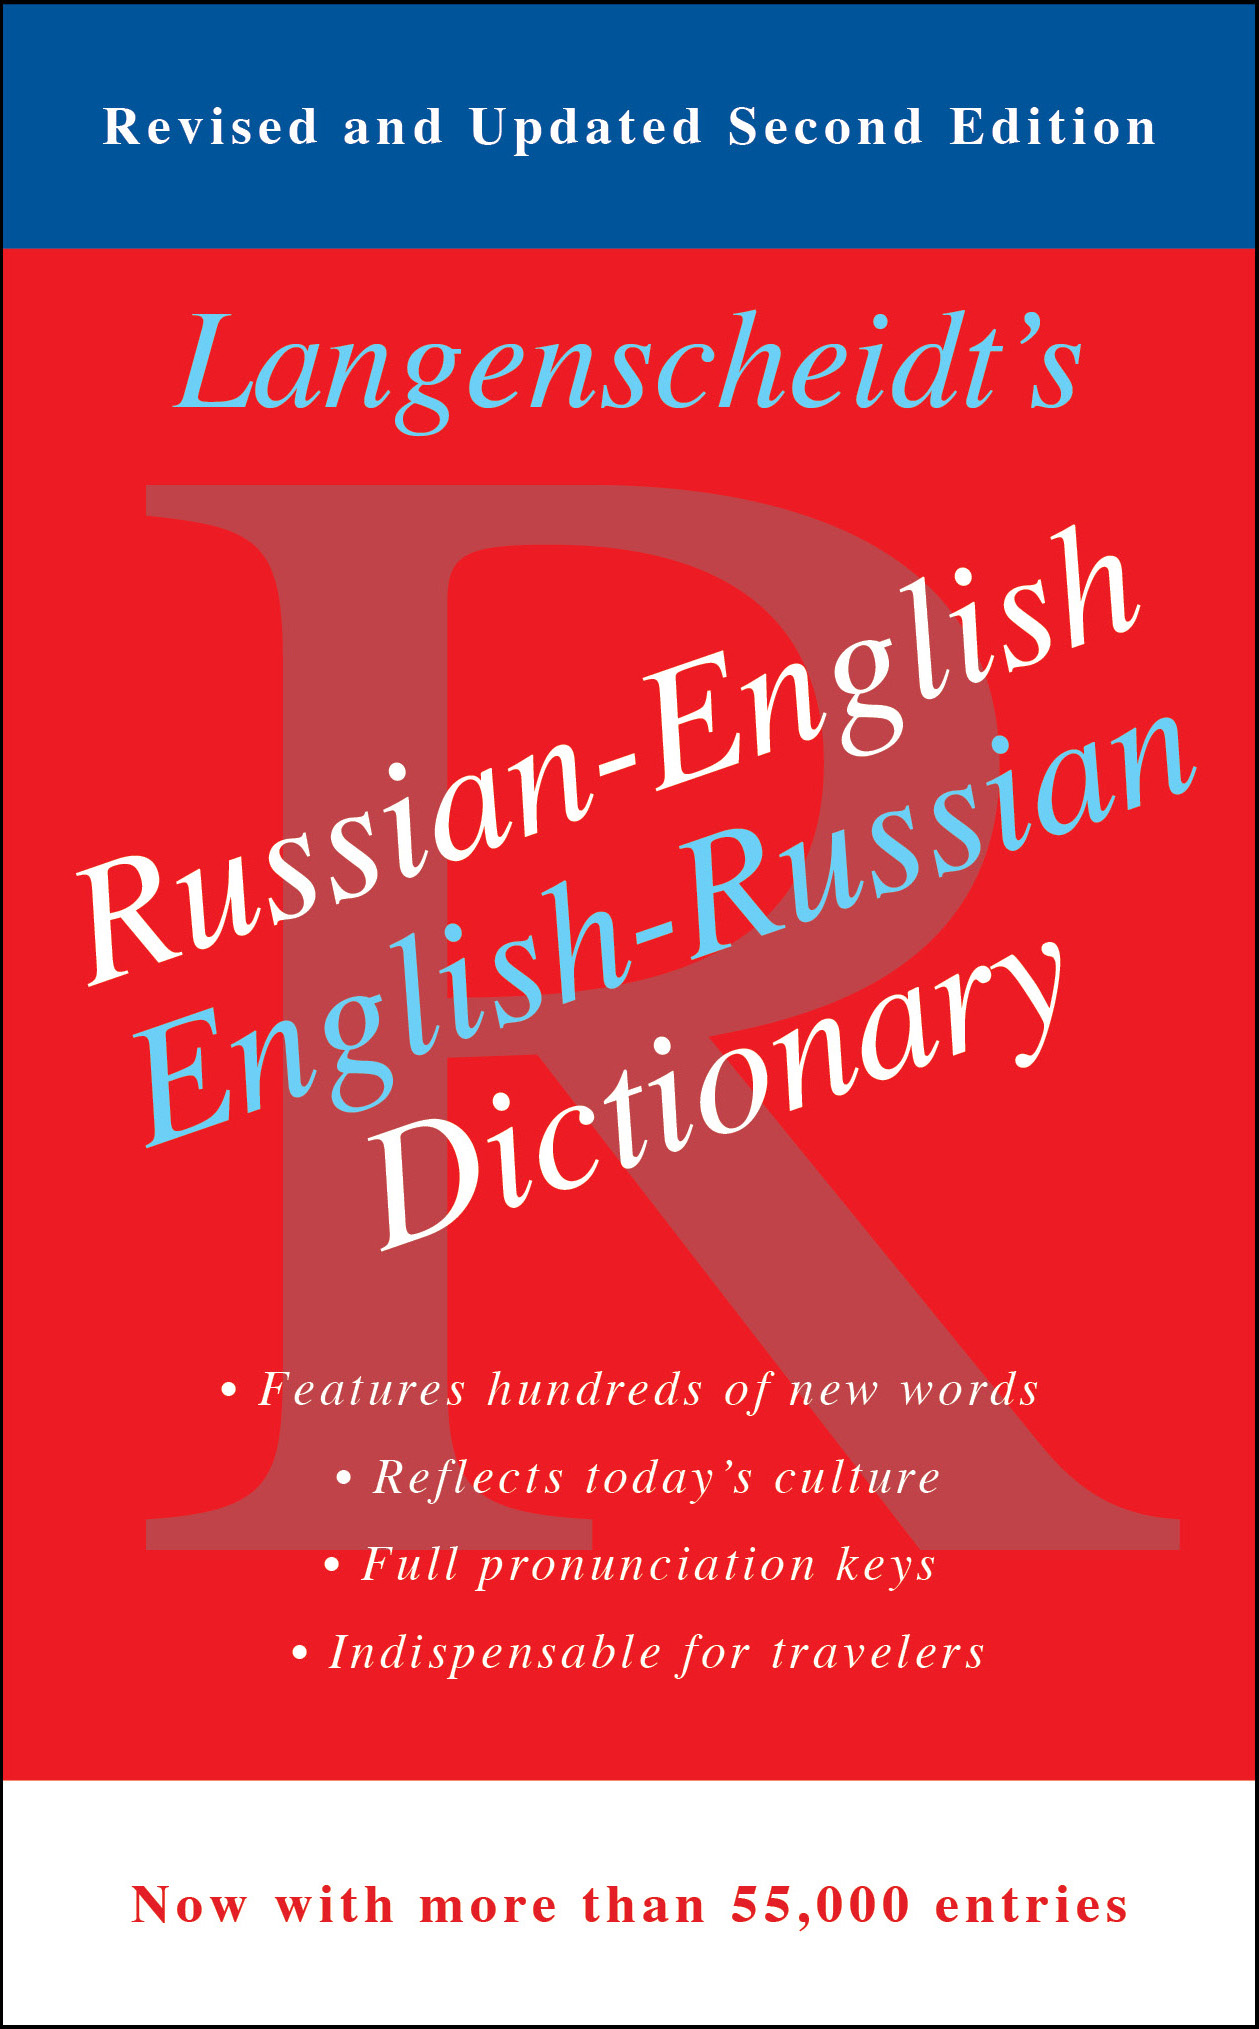 Russian-English Dictionary | Book by Langenscheidt Editorial